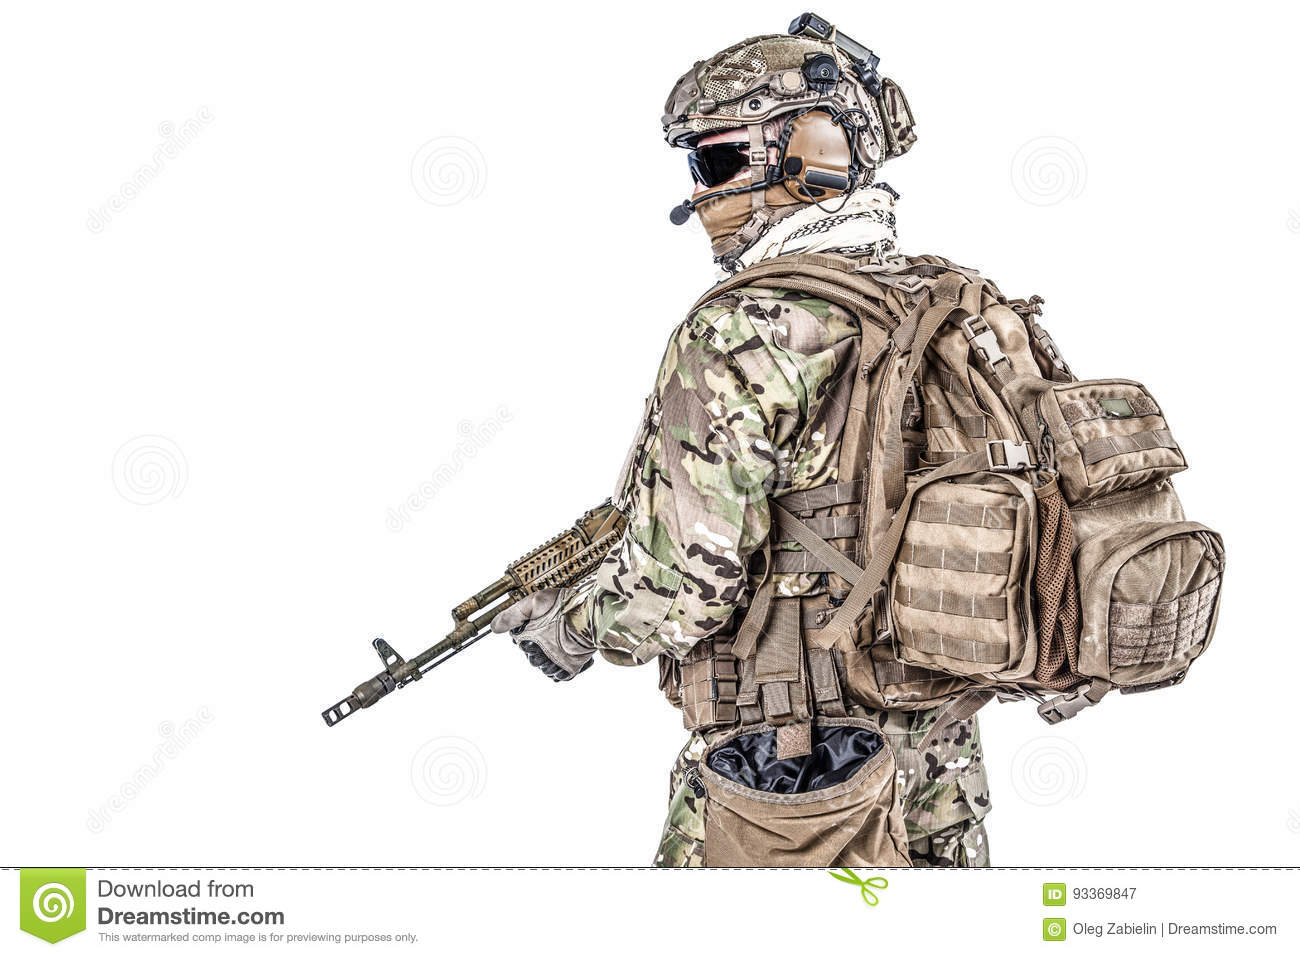 Page 3 - Rifle Vectors High Resolution Stock Photography and Images - Alamy